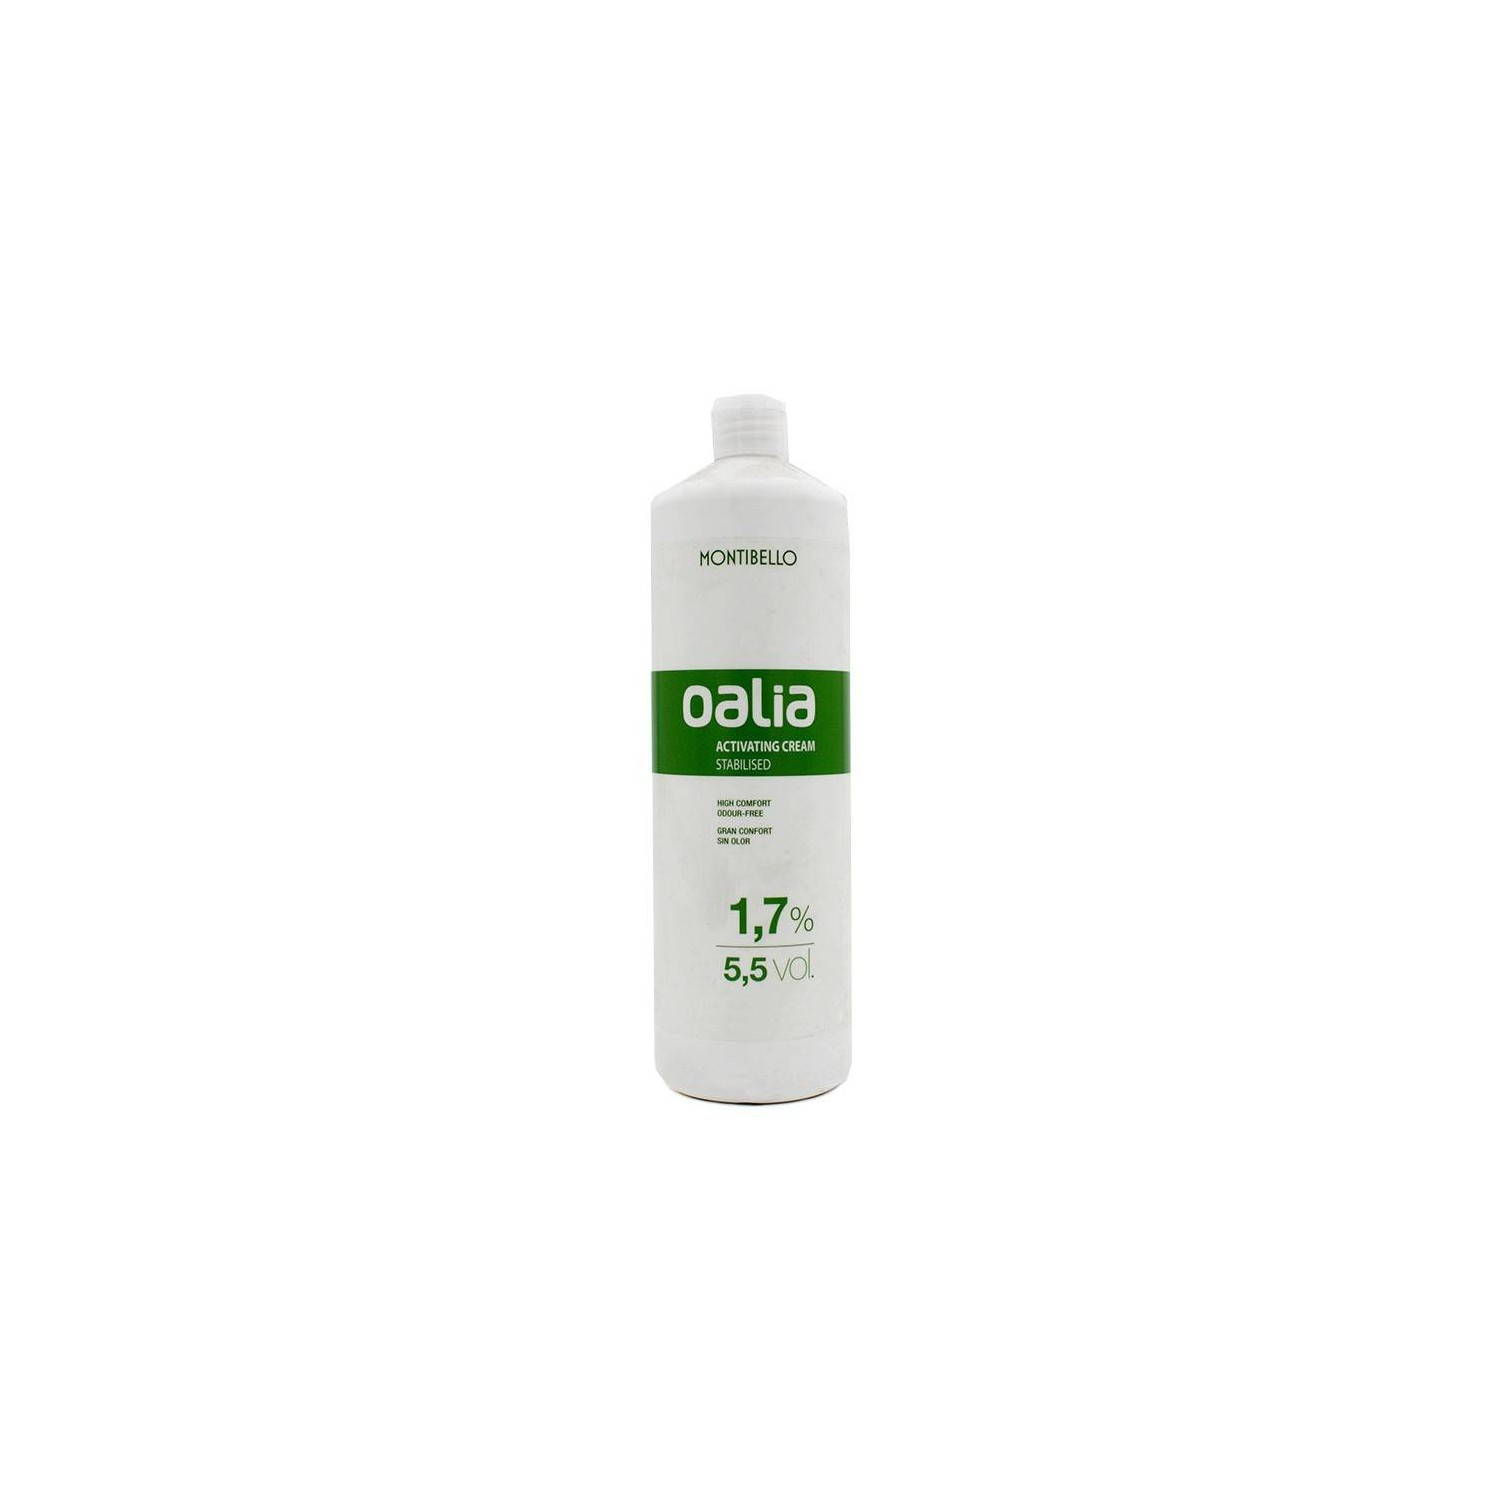 Montibello Oalia Activ Cream 5.5 Vol 1.7% 1000 Ml